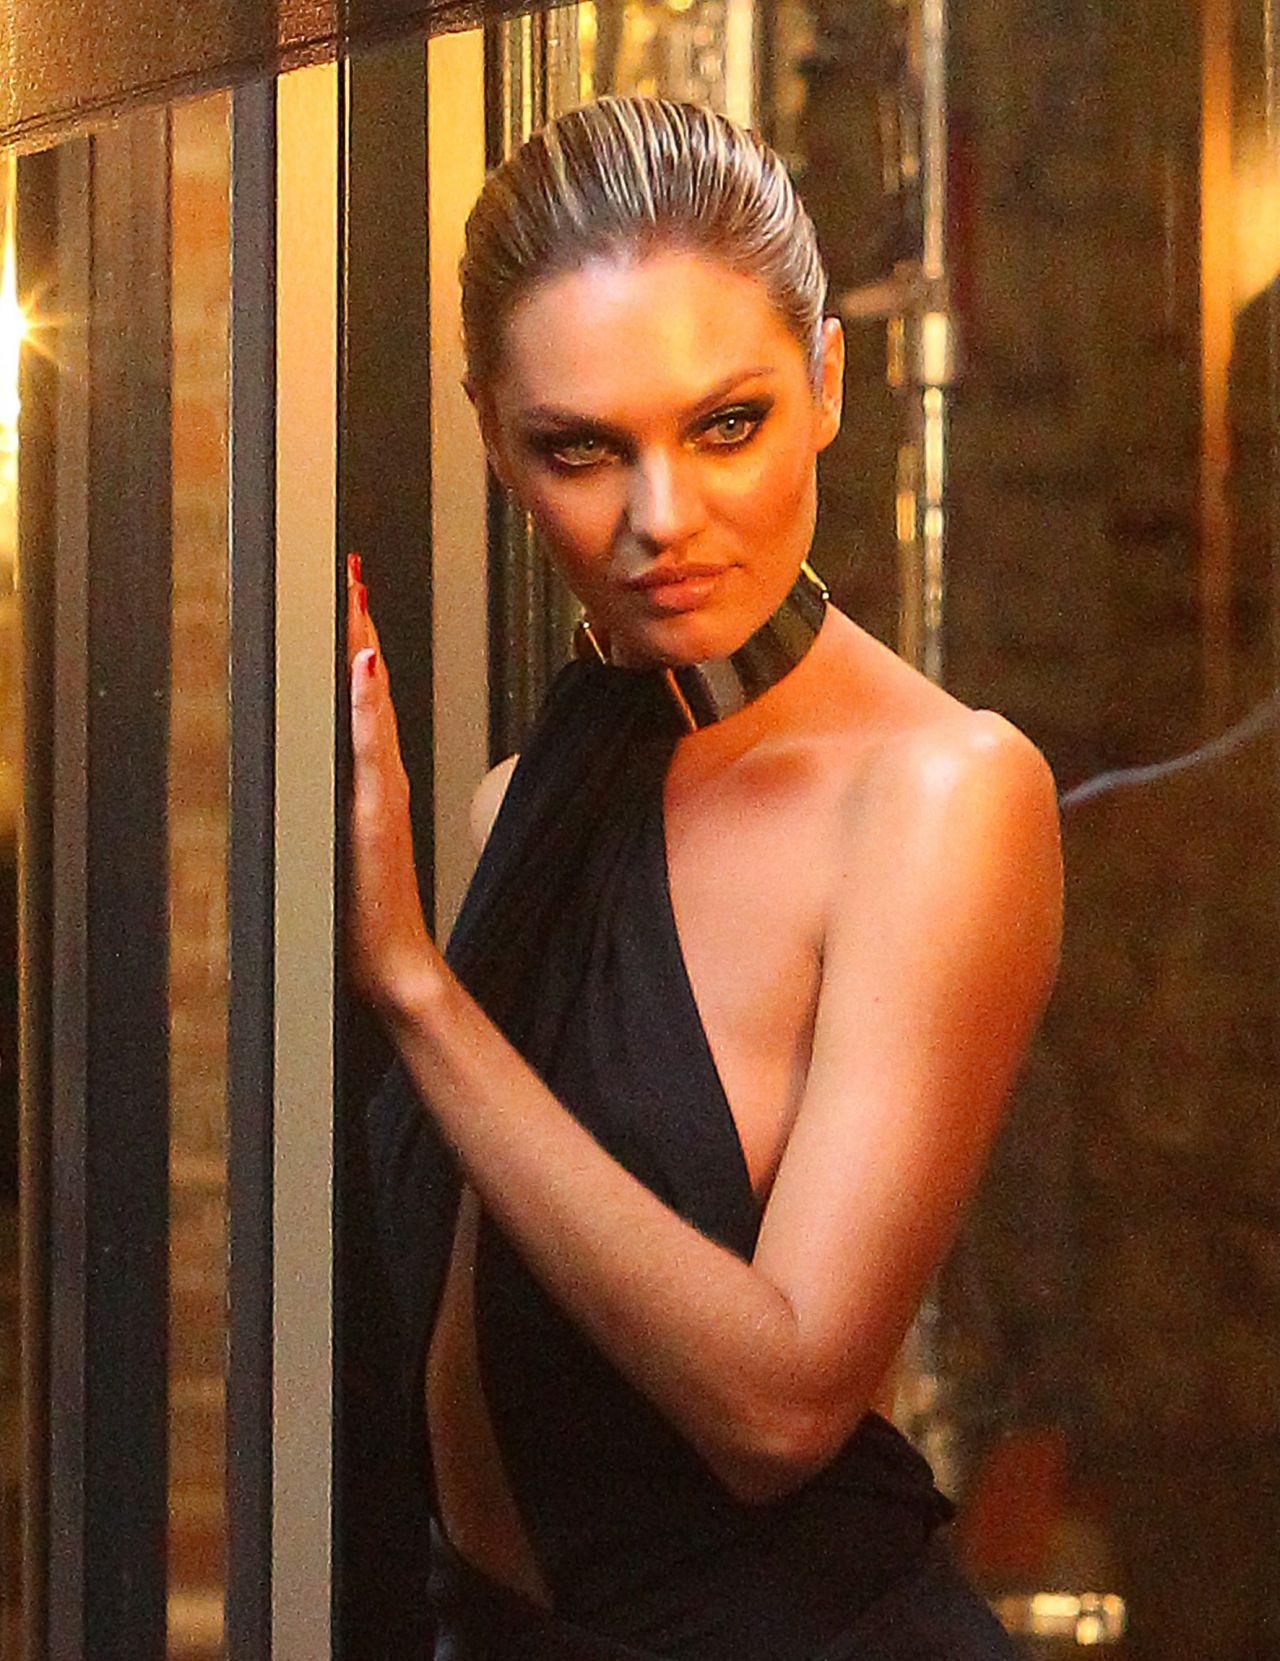 Candice Swanepoel in Hot Dress - BTS Photoshoot West Village - NYC, May 2014